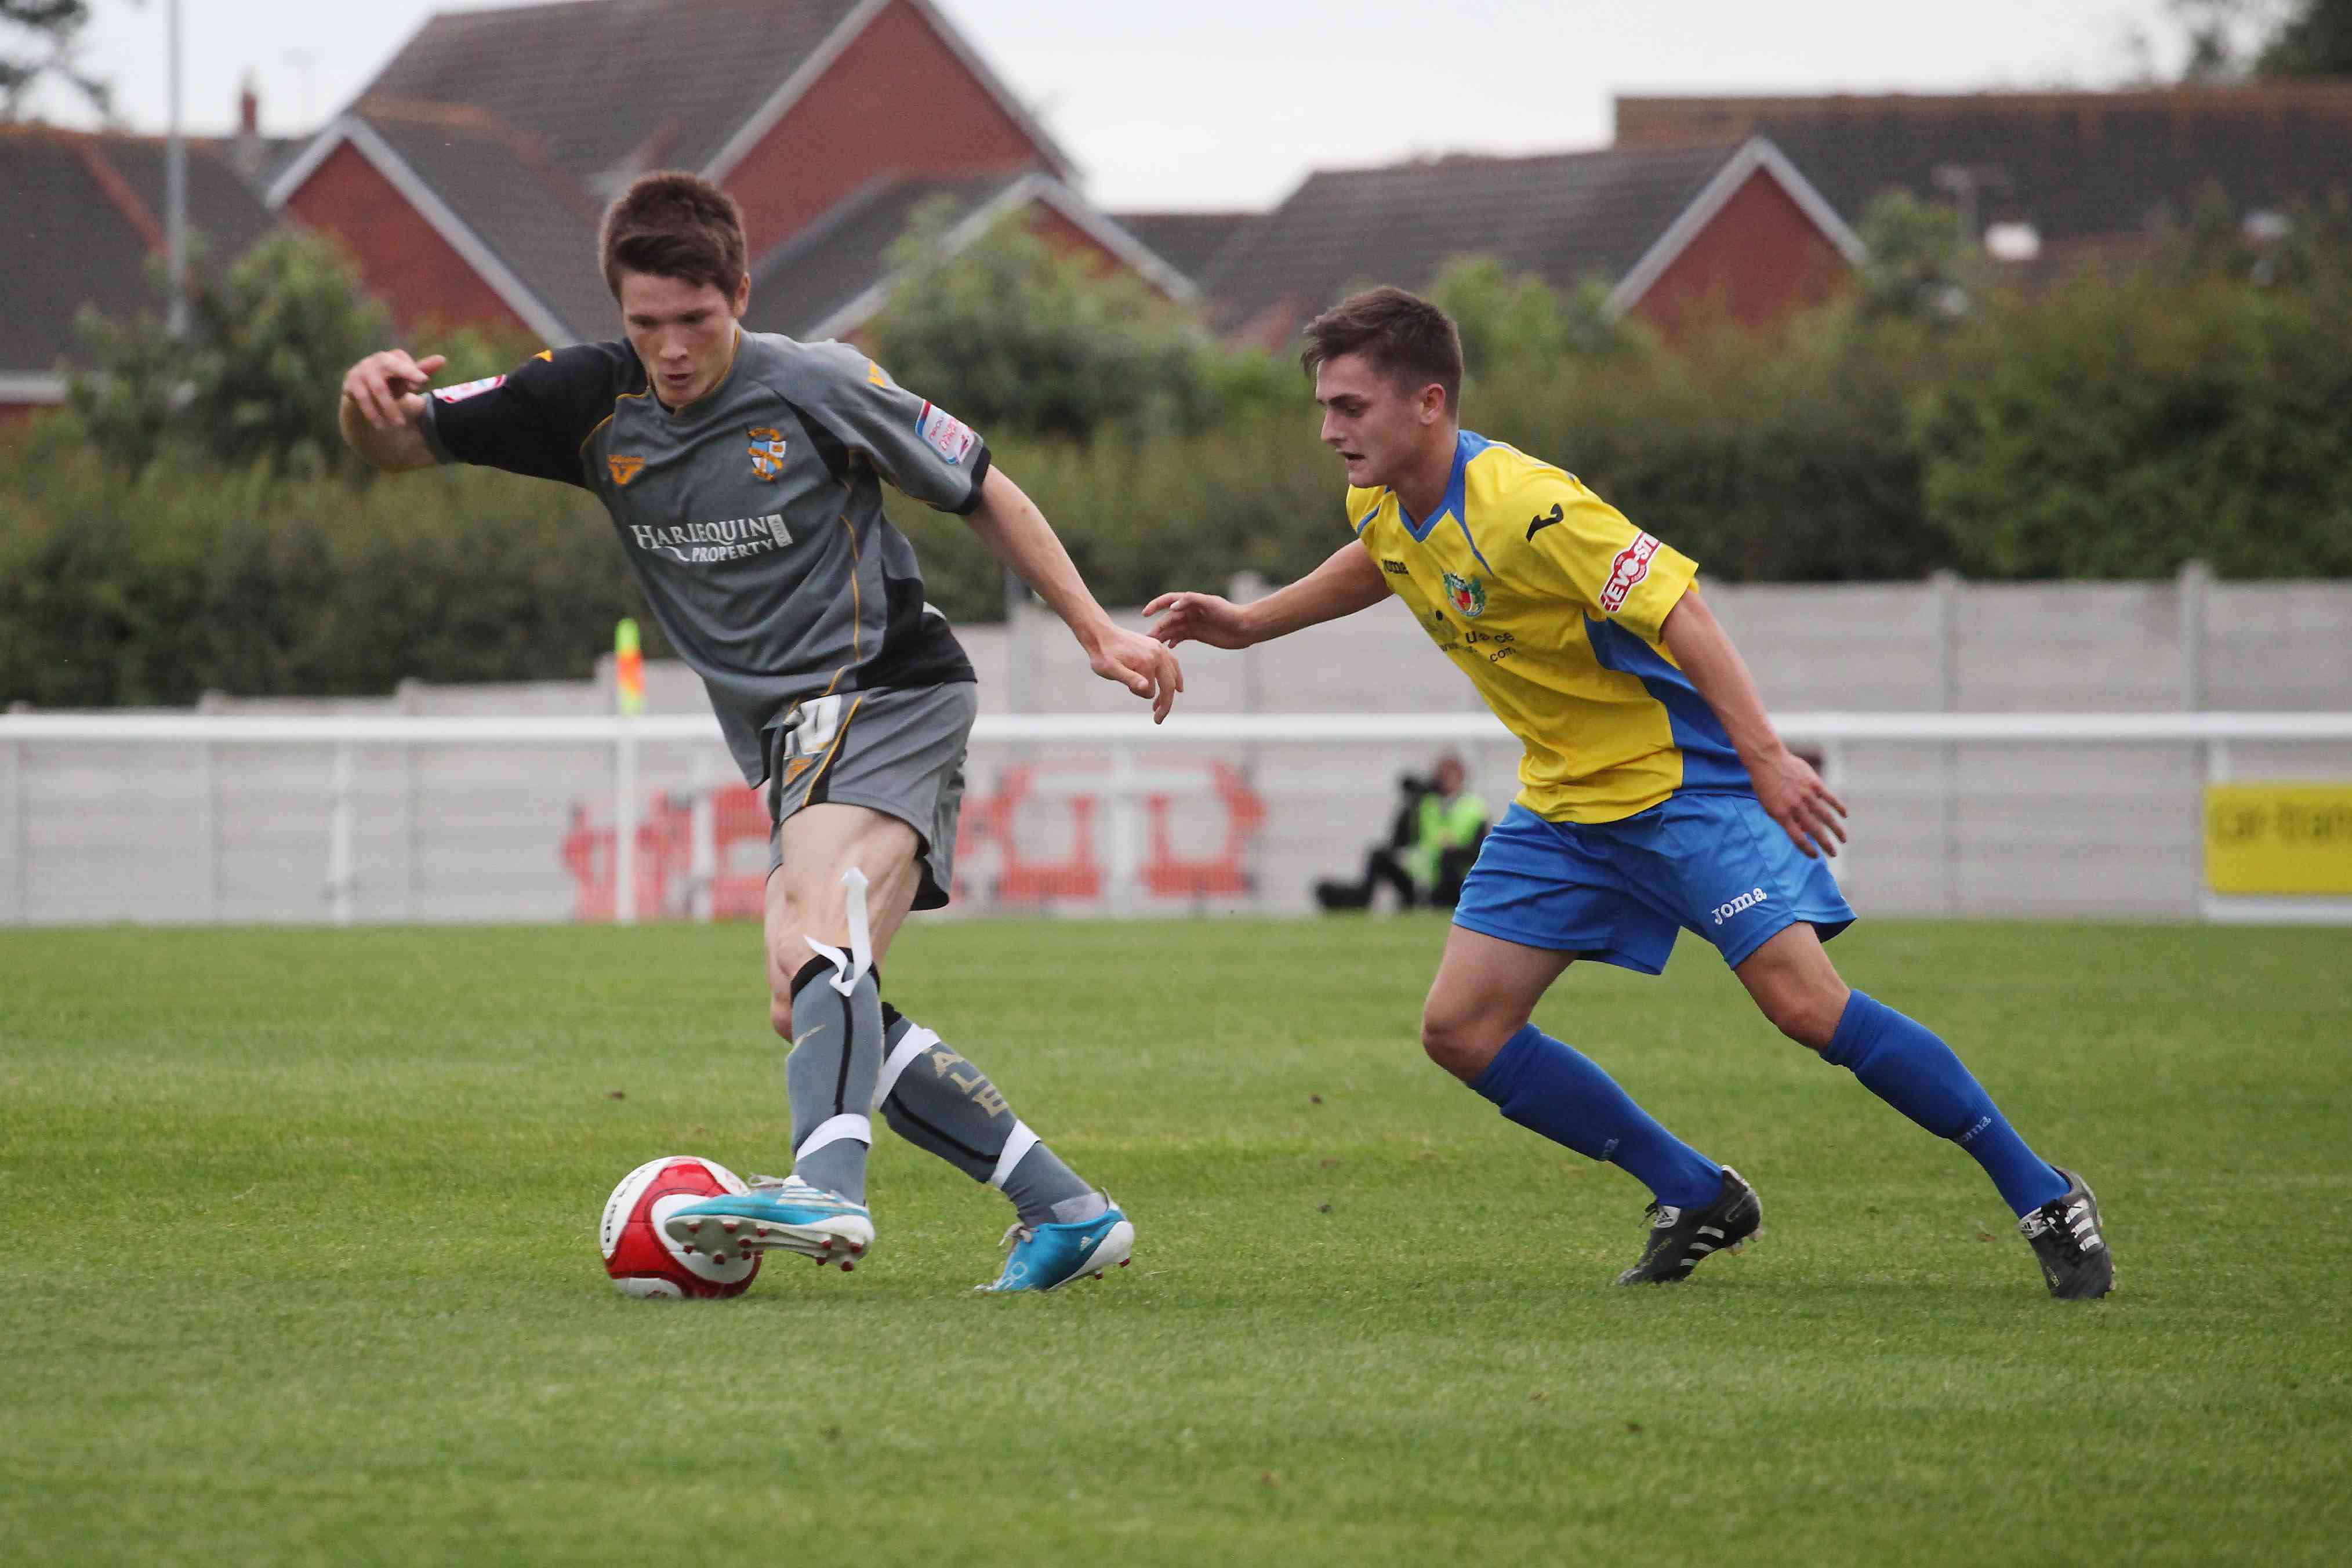 Ryan Burge in action against Nantwich Town 2012